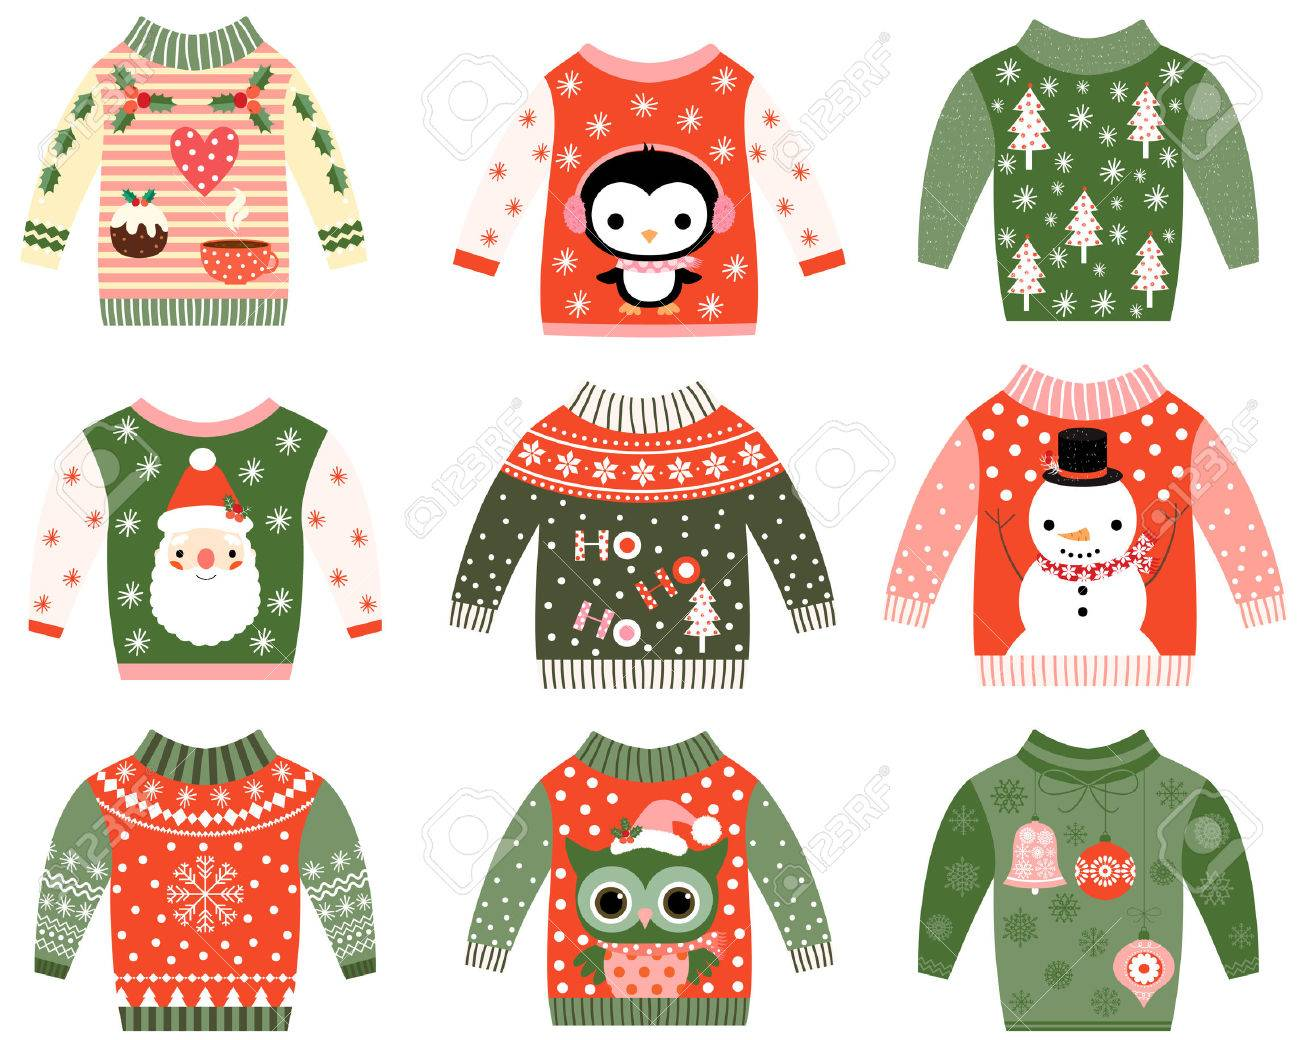 Cute Ugly Christmas Sweaters Collection Sweater Party Invitation